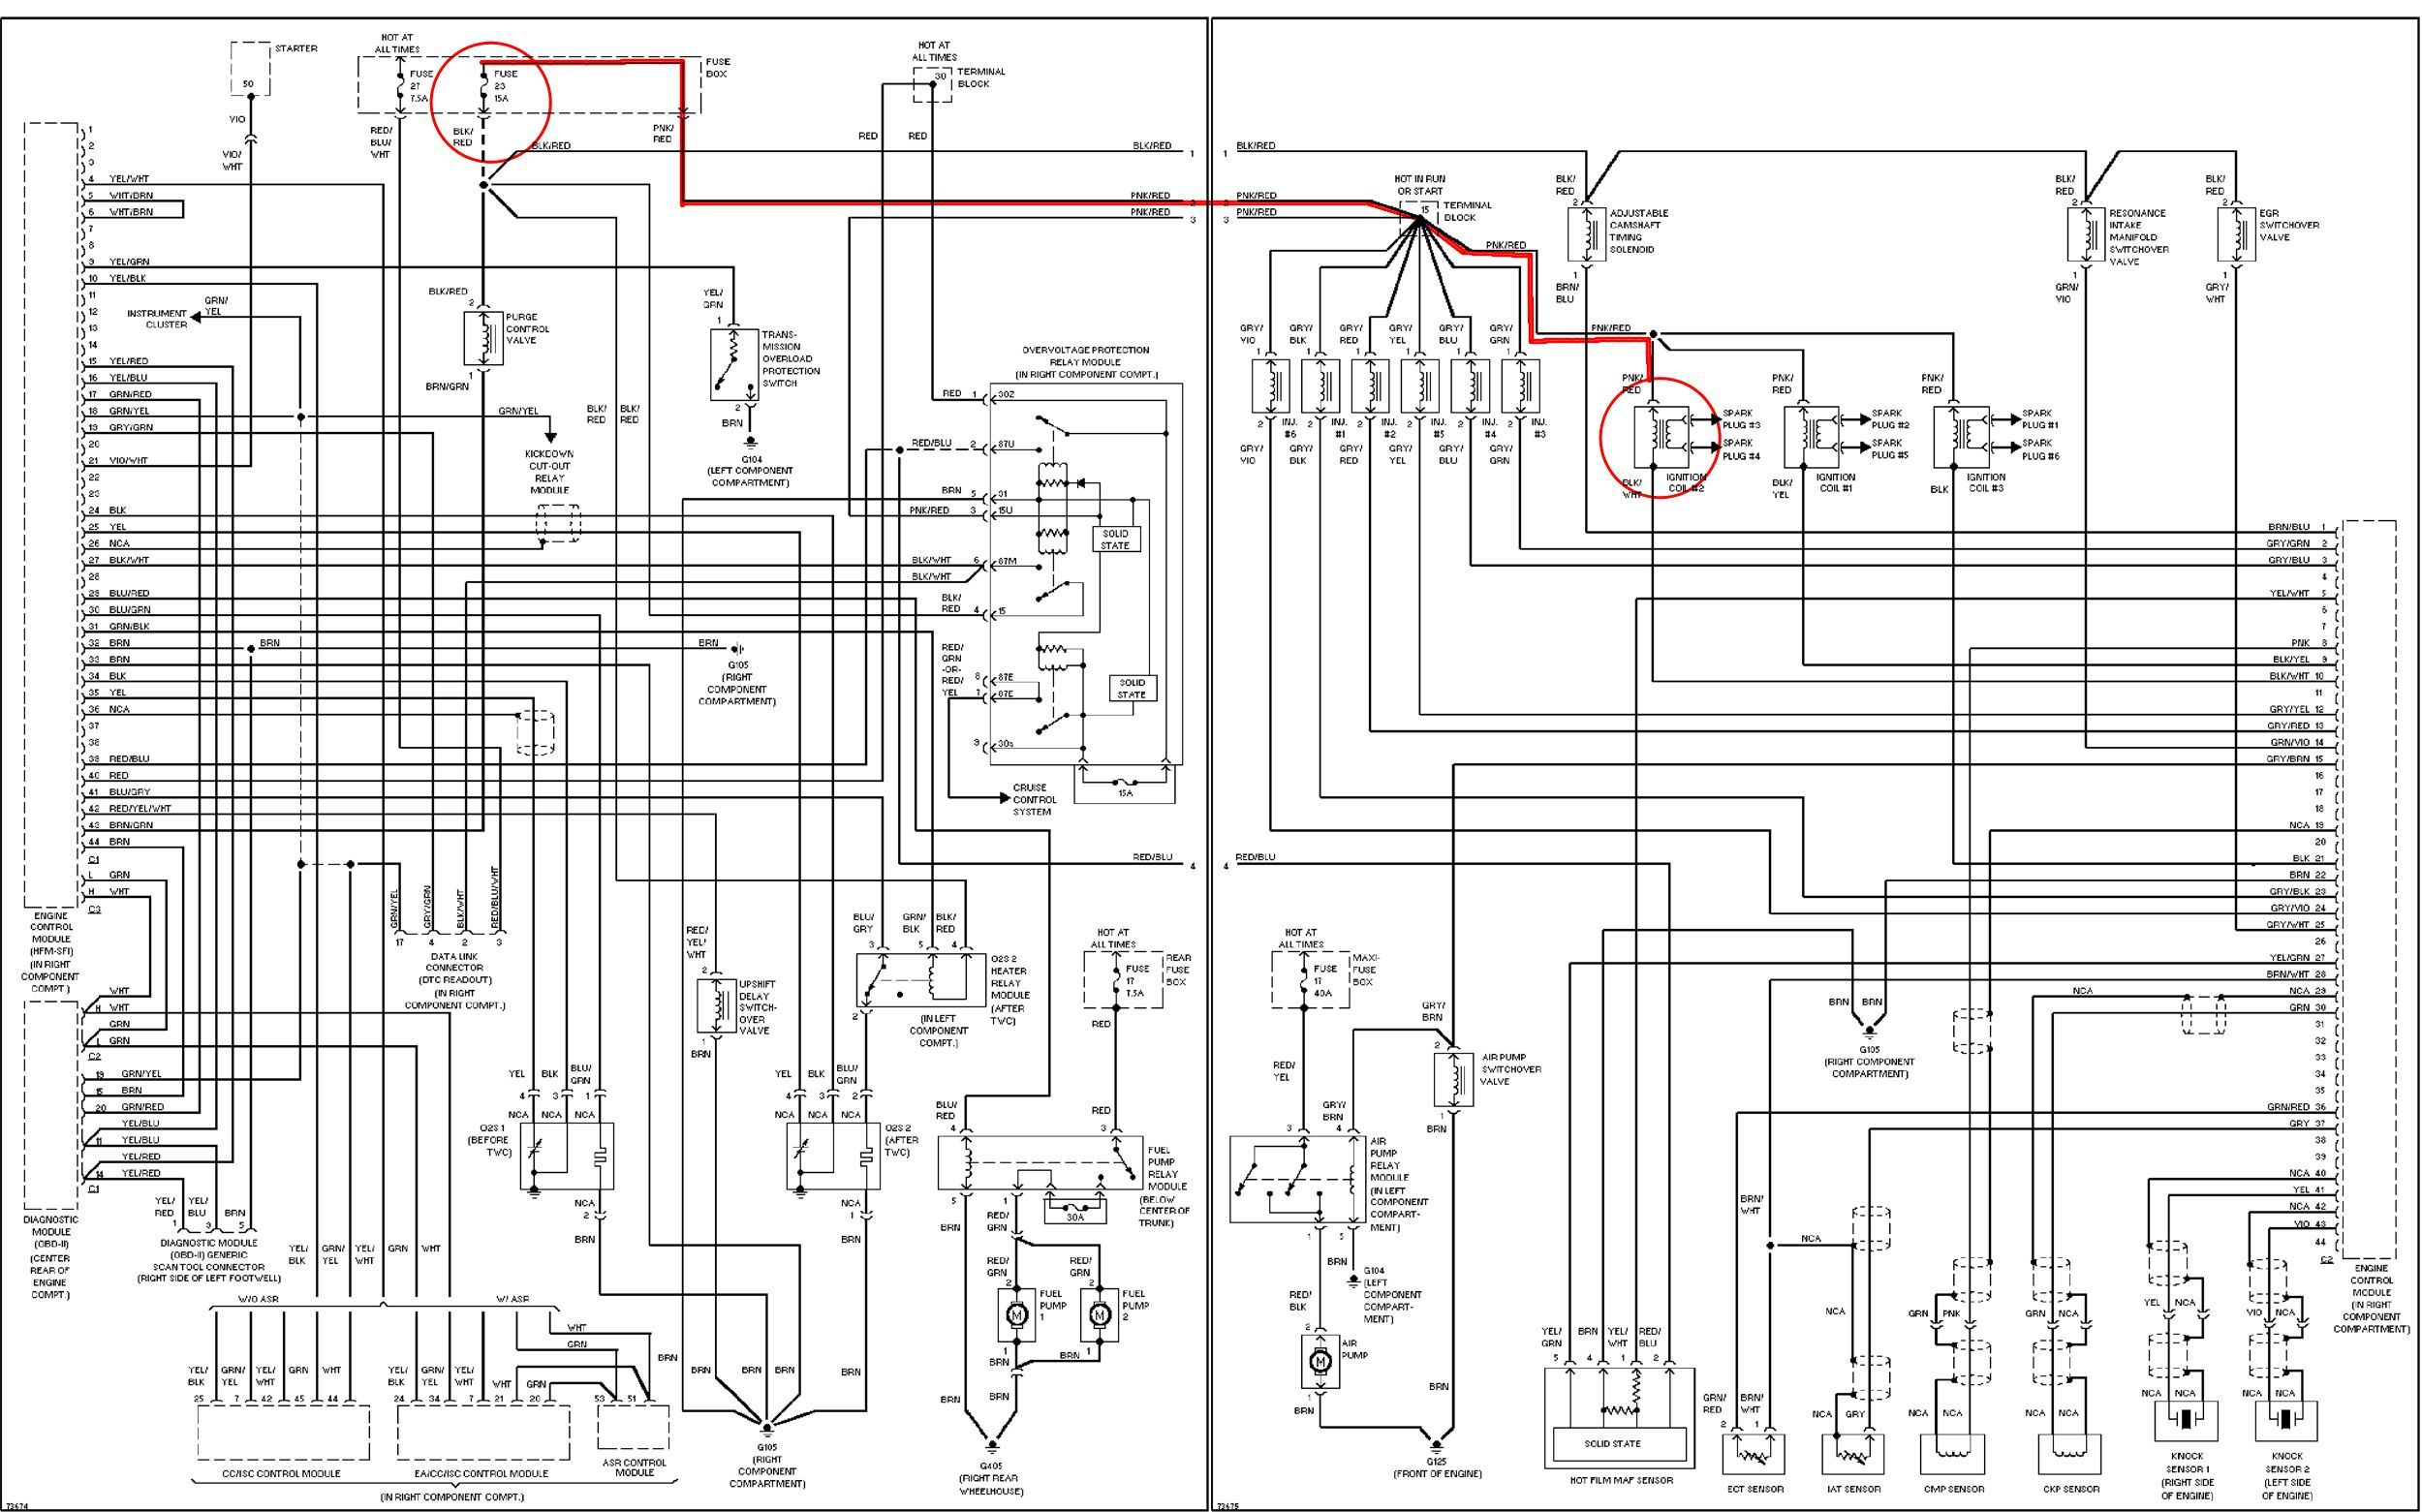 k1blm to mercedes benz wiring diagram wiring schematics rh pinterest com mercedes benz wiring diagrams pdf mercedes benz w124 wiring diagram